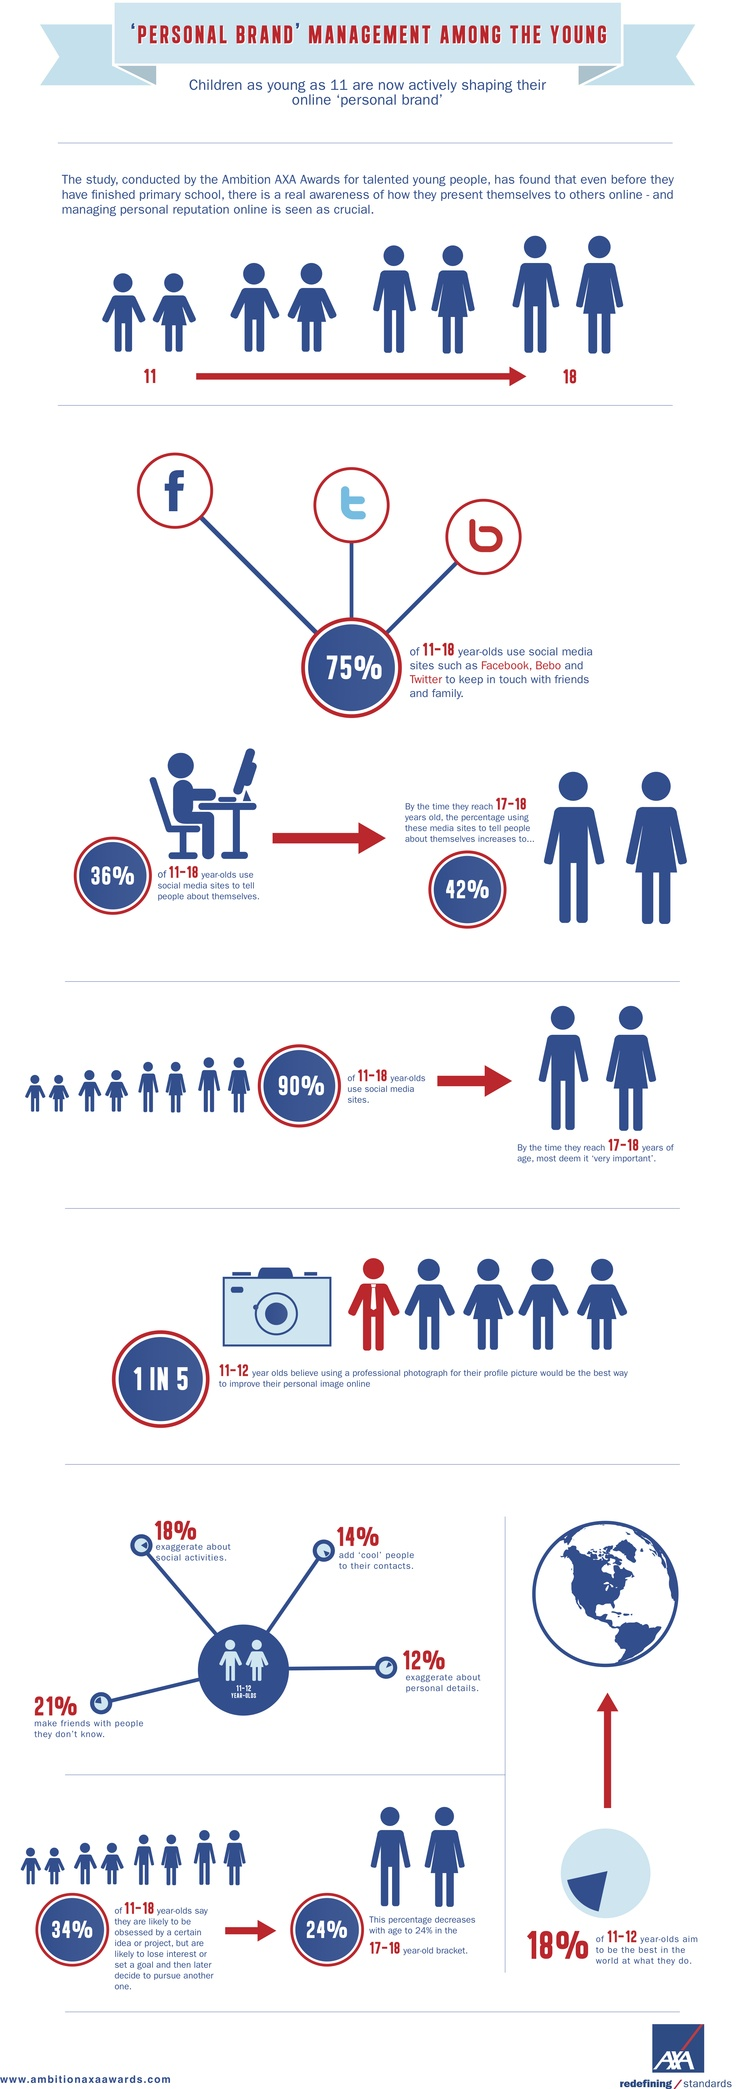 1000+ images about Brand Management on Pinterest ...